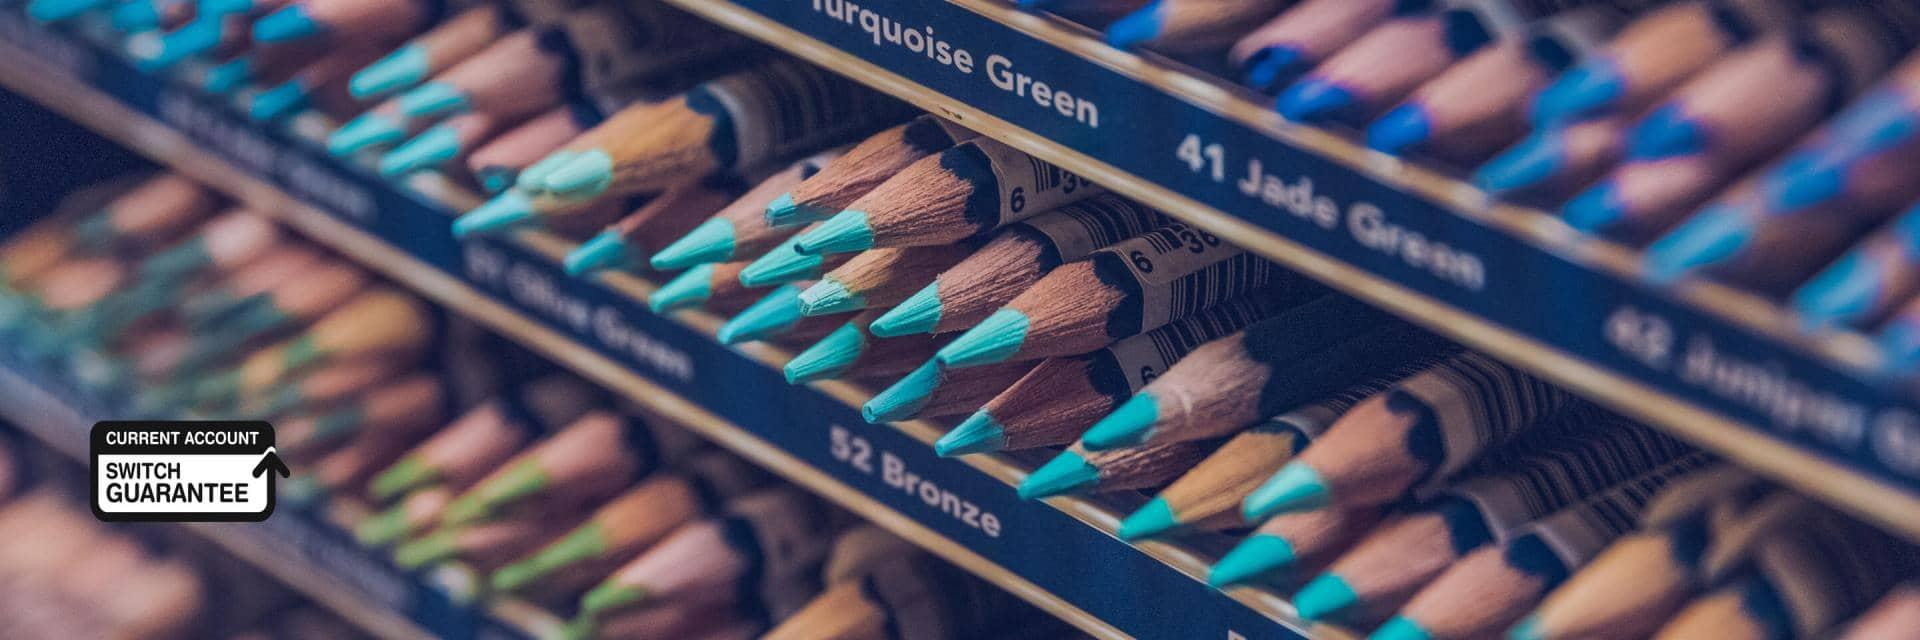 Coloured pencils arranged in a shop display